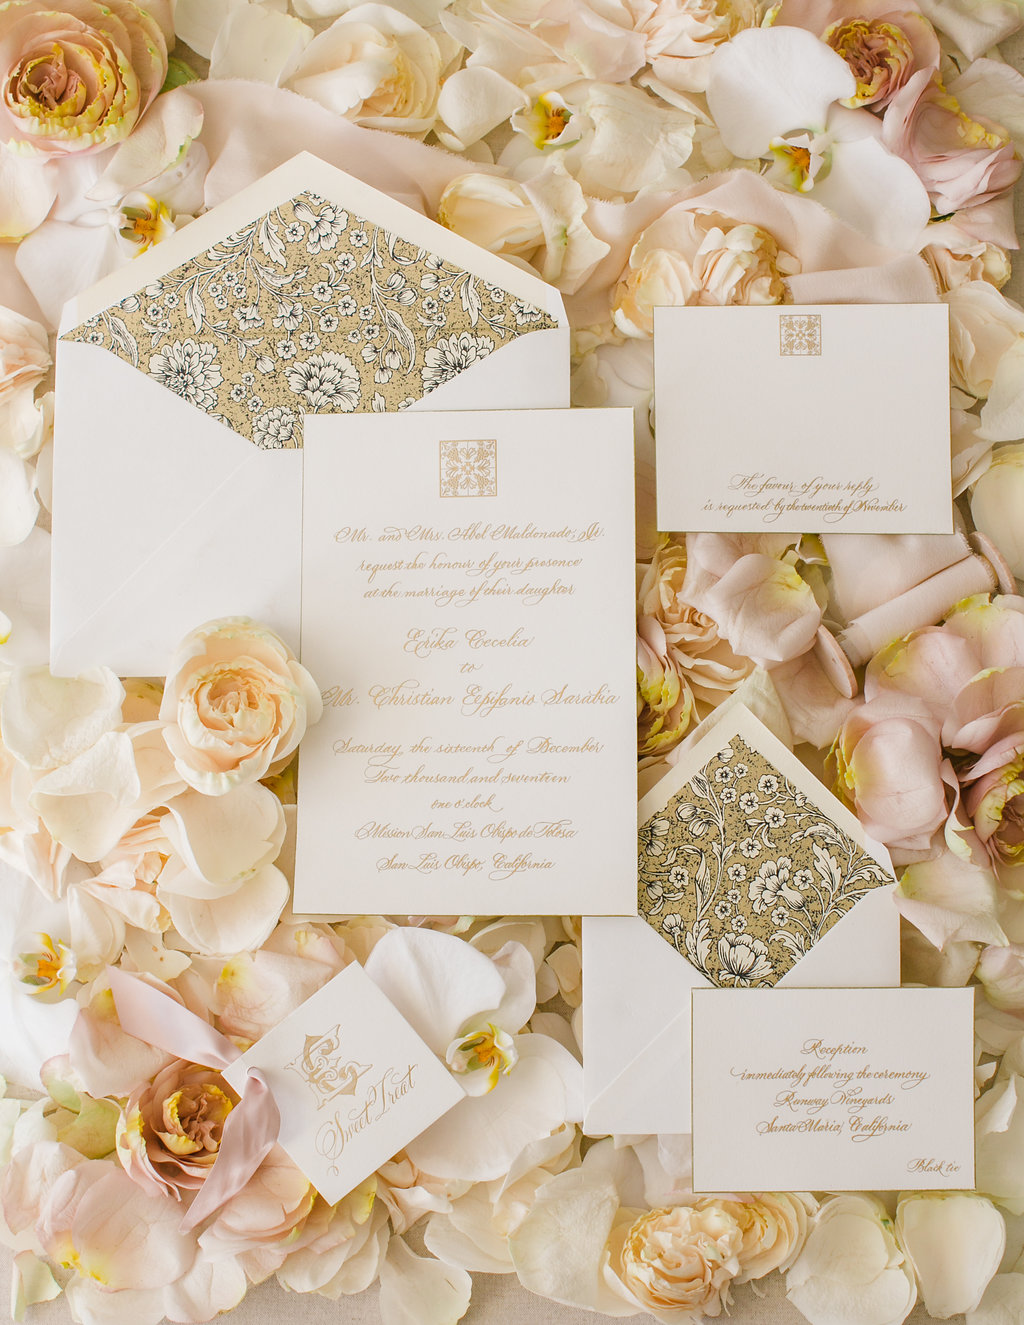 Michelle Beller Photography // Reception card indicates Black Tie